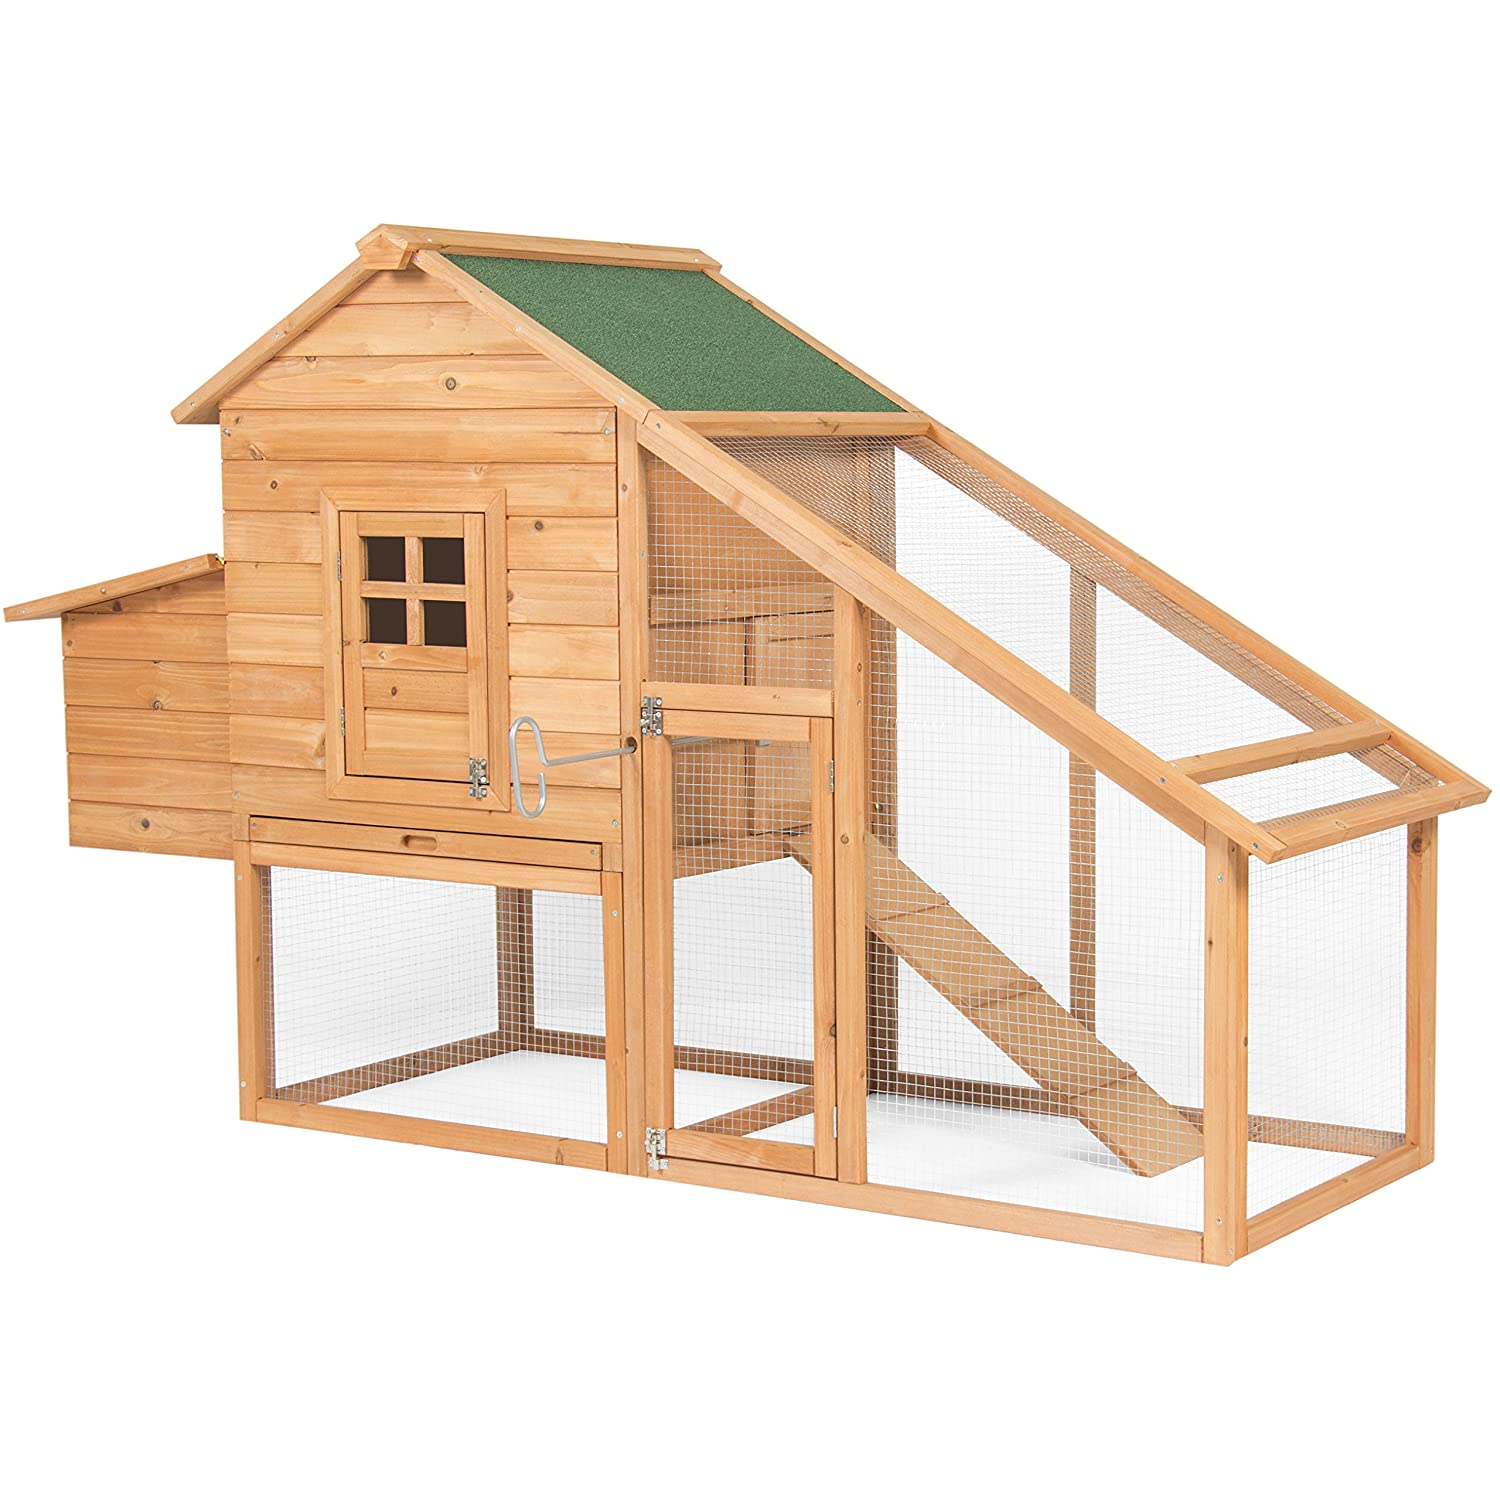 Home product 12 bird chicken coop - Amazon Com Best Choice Products 75 Wooden Chicken Coop Backyard Nest Box Wood Hen House Poultry Cage Hutch Garden Outdoor